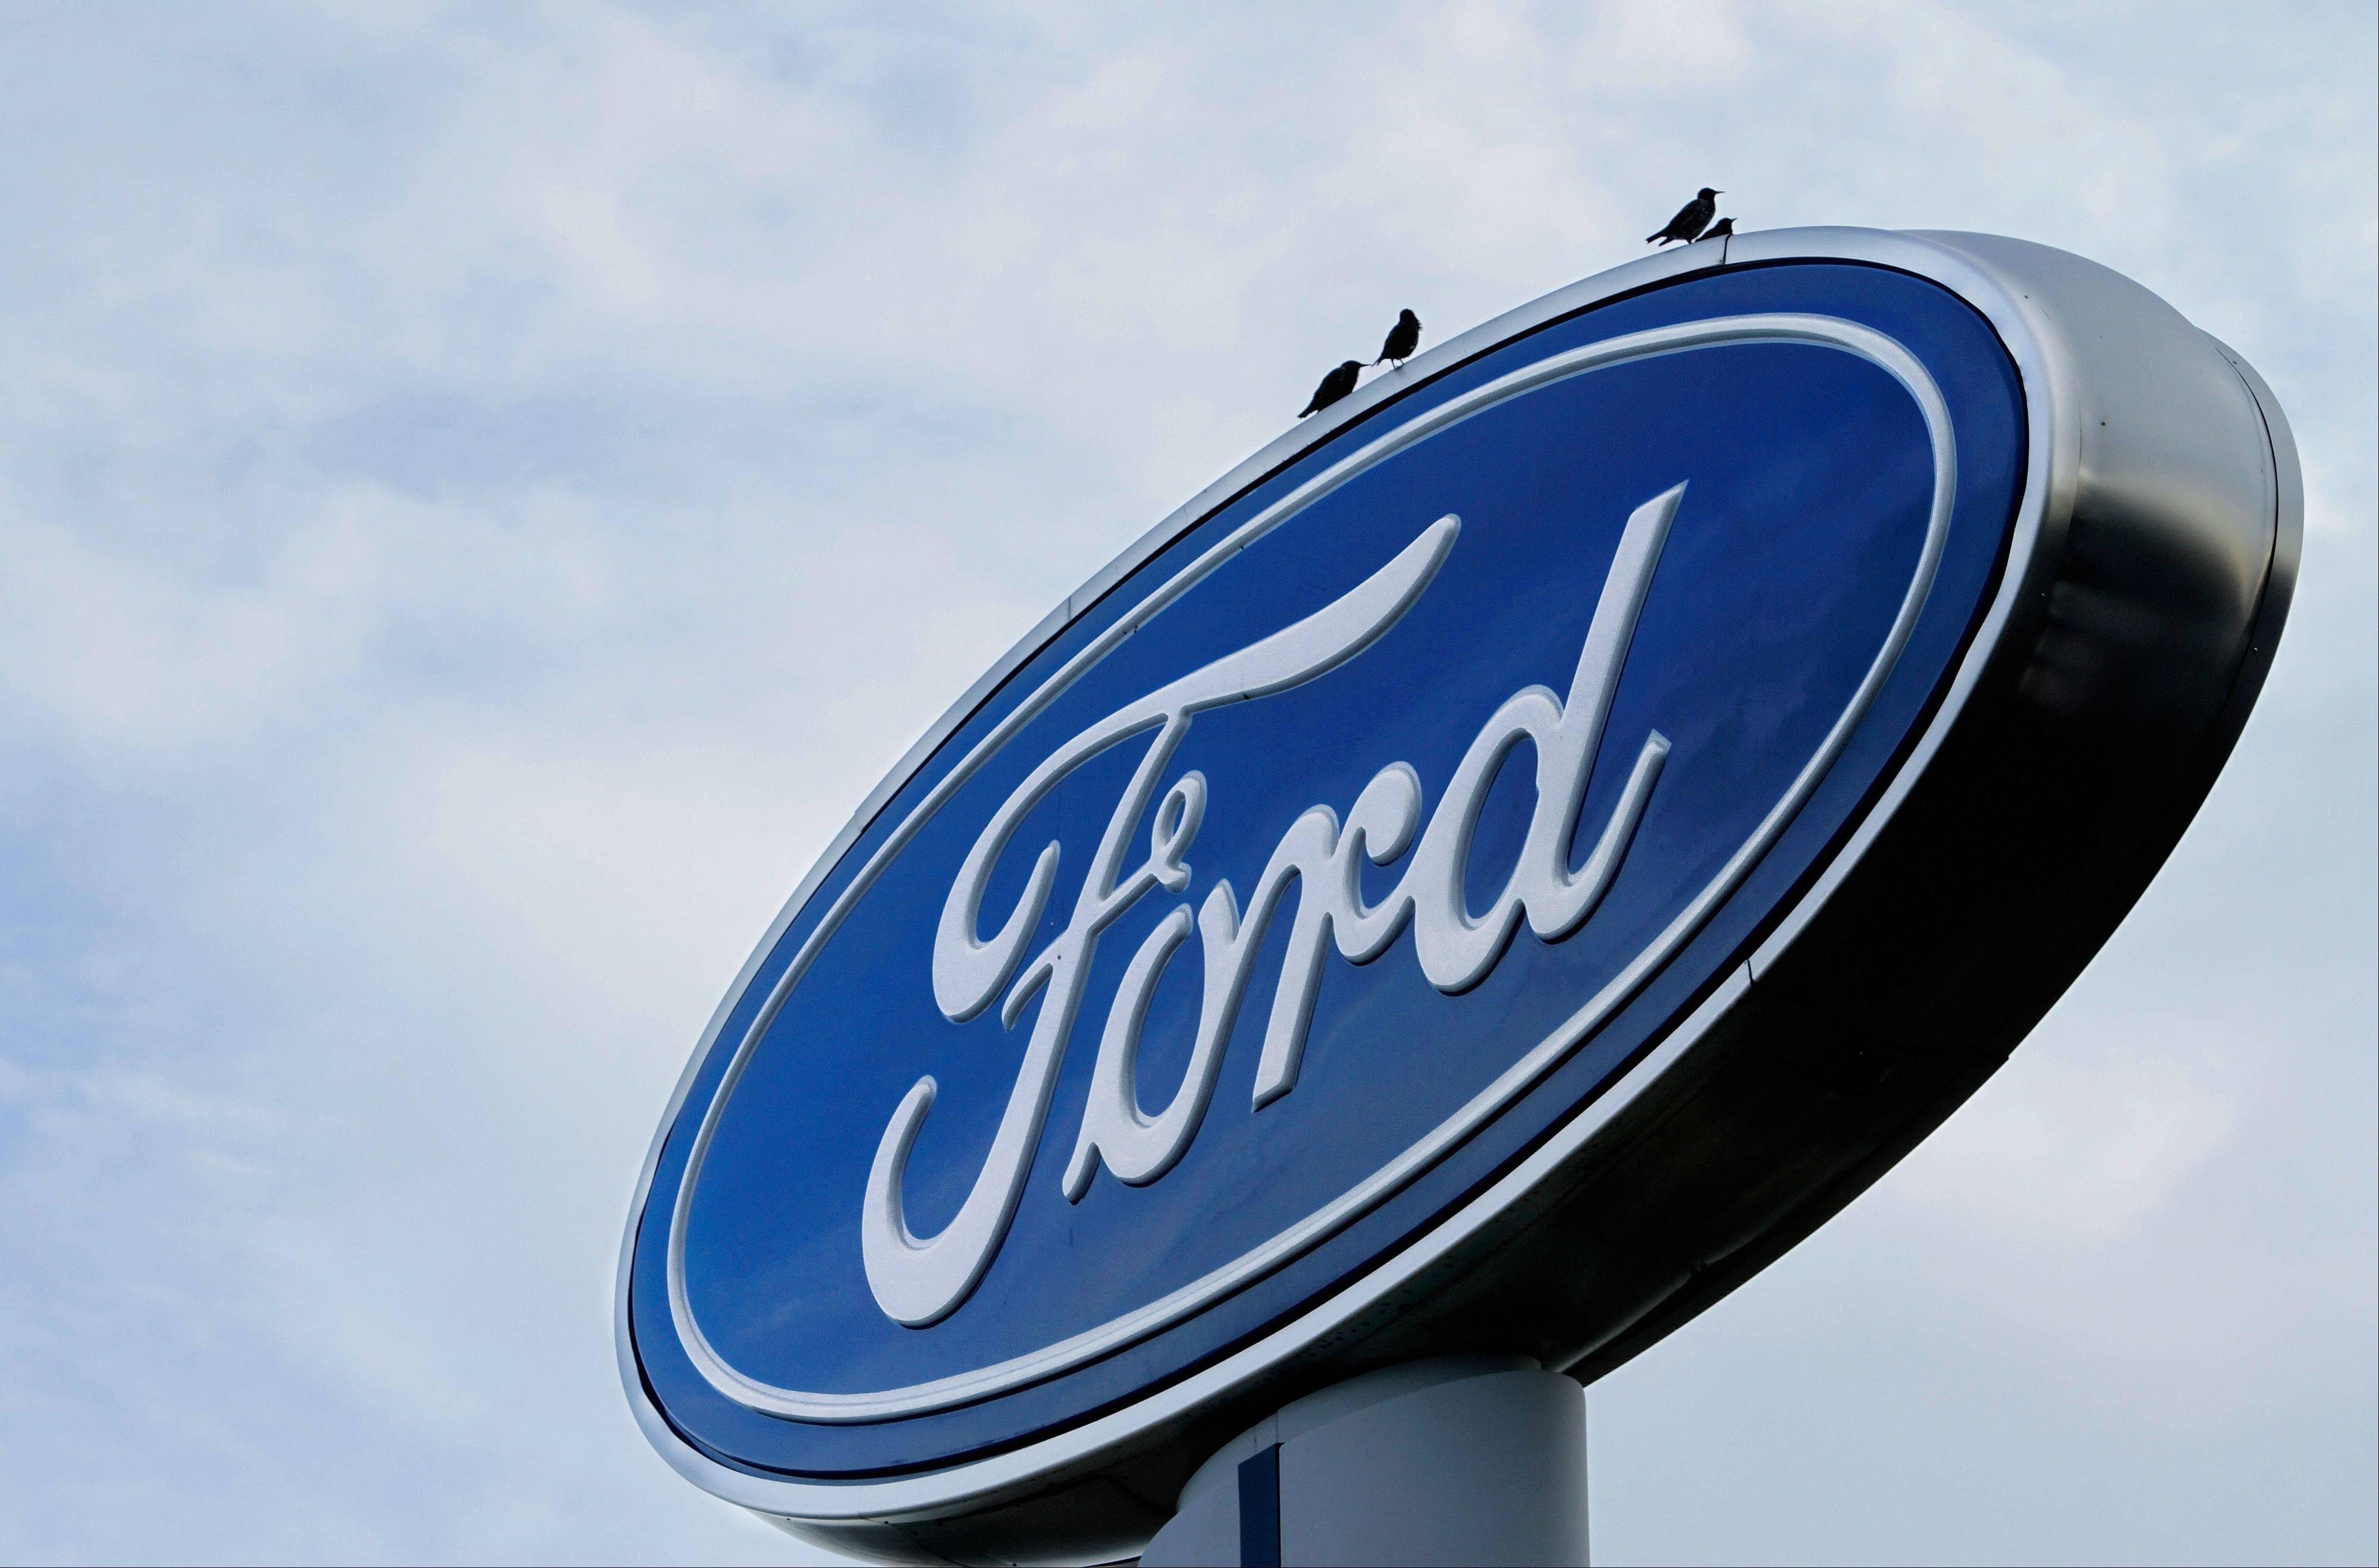 Ford has agreed to a �customer satisfaction campaign� and will fix problems for free relating to a sticky throttle in older Ford Taurus and Mercury Sable sedans.